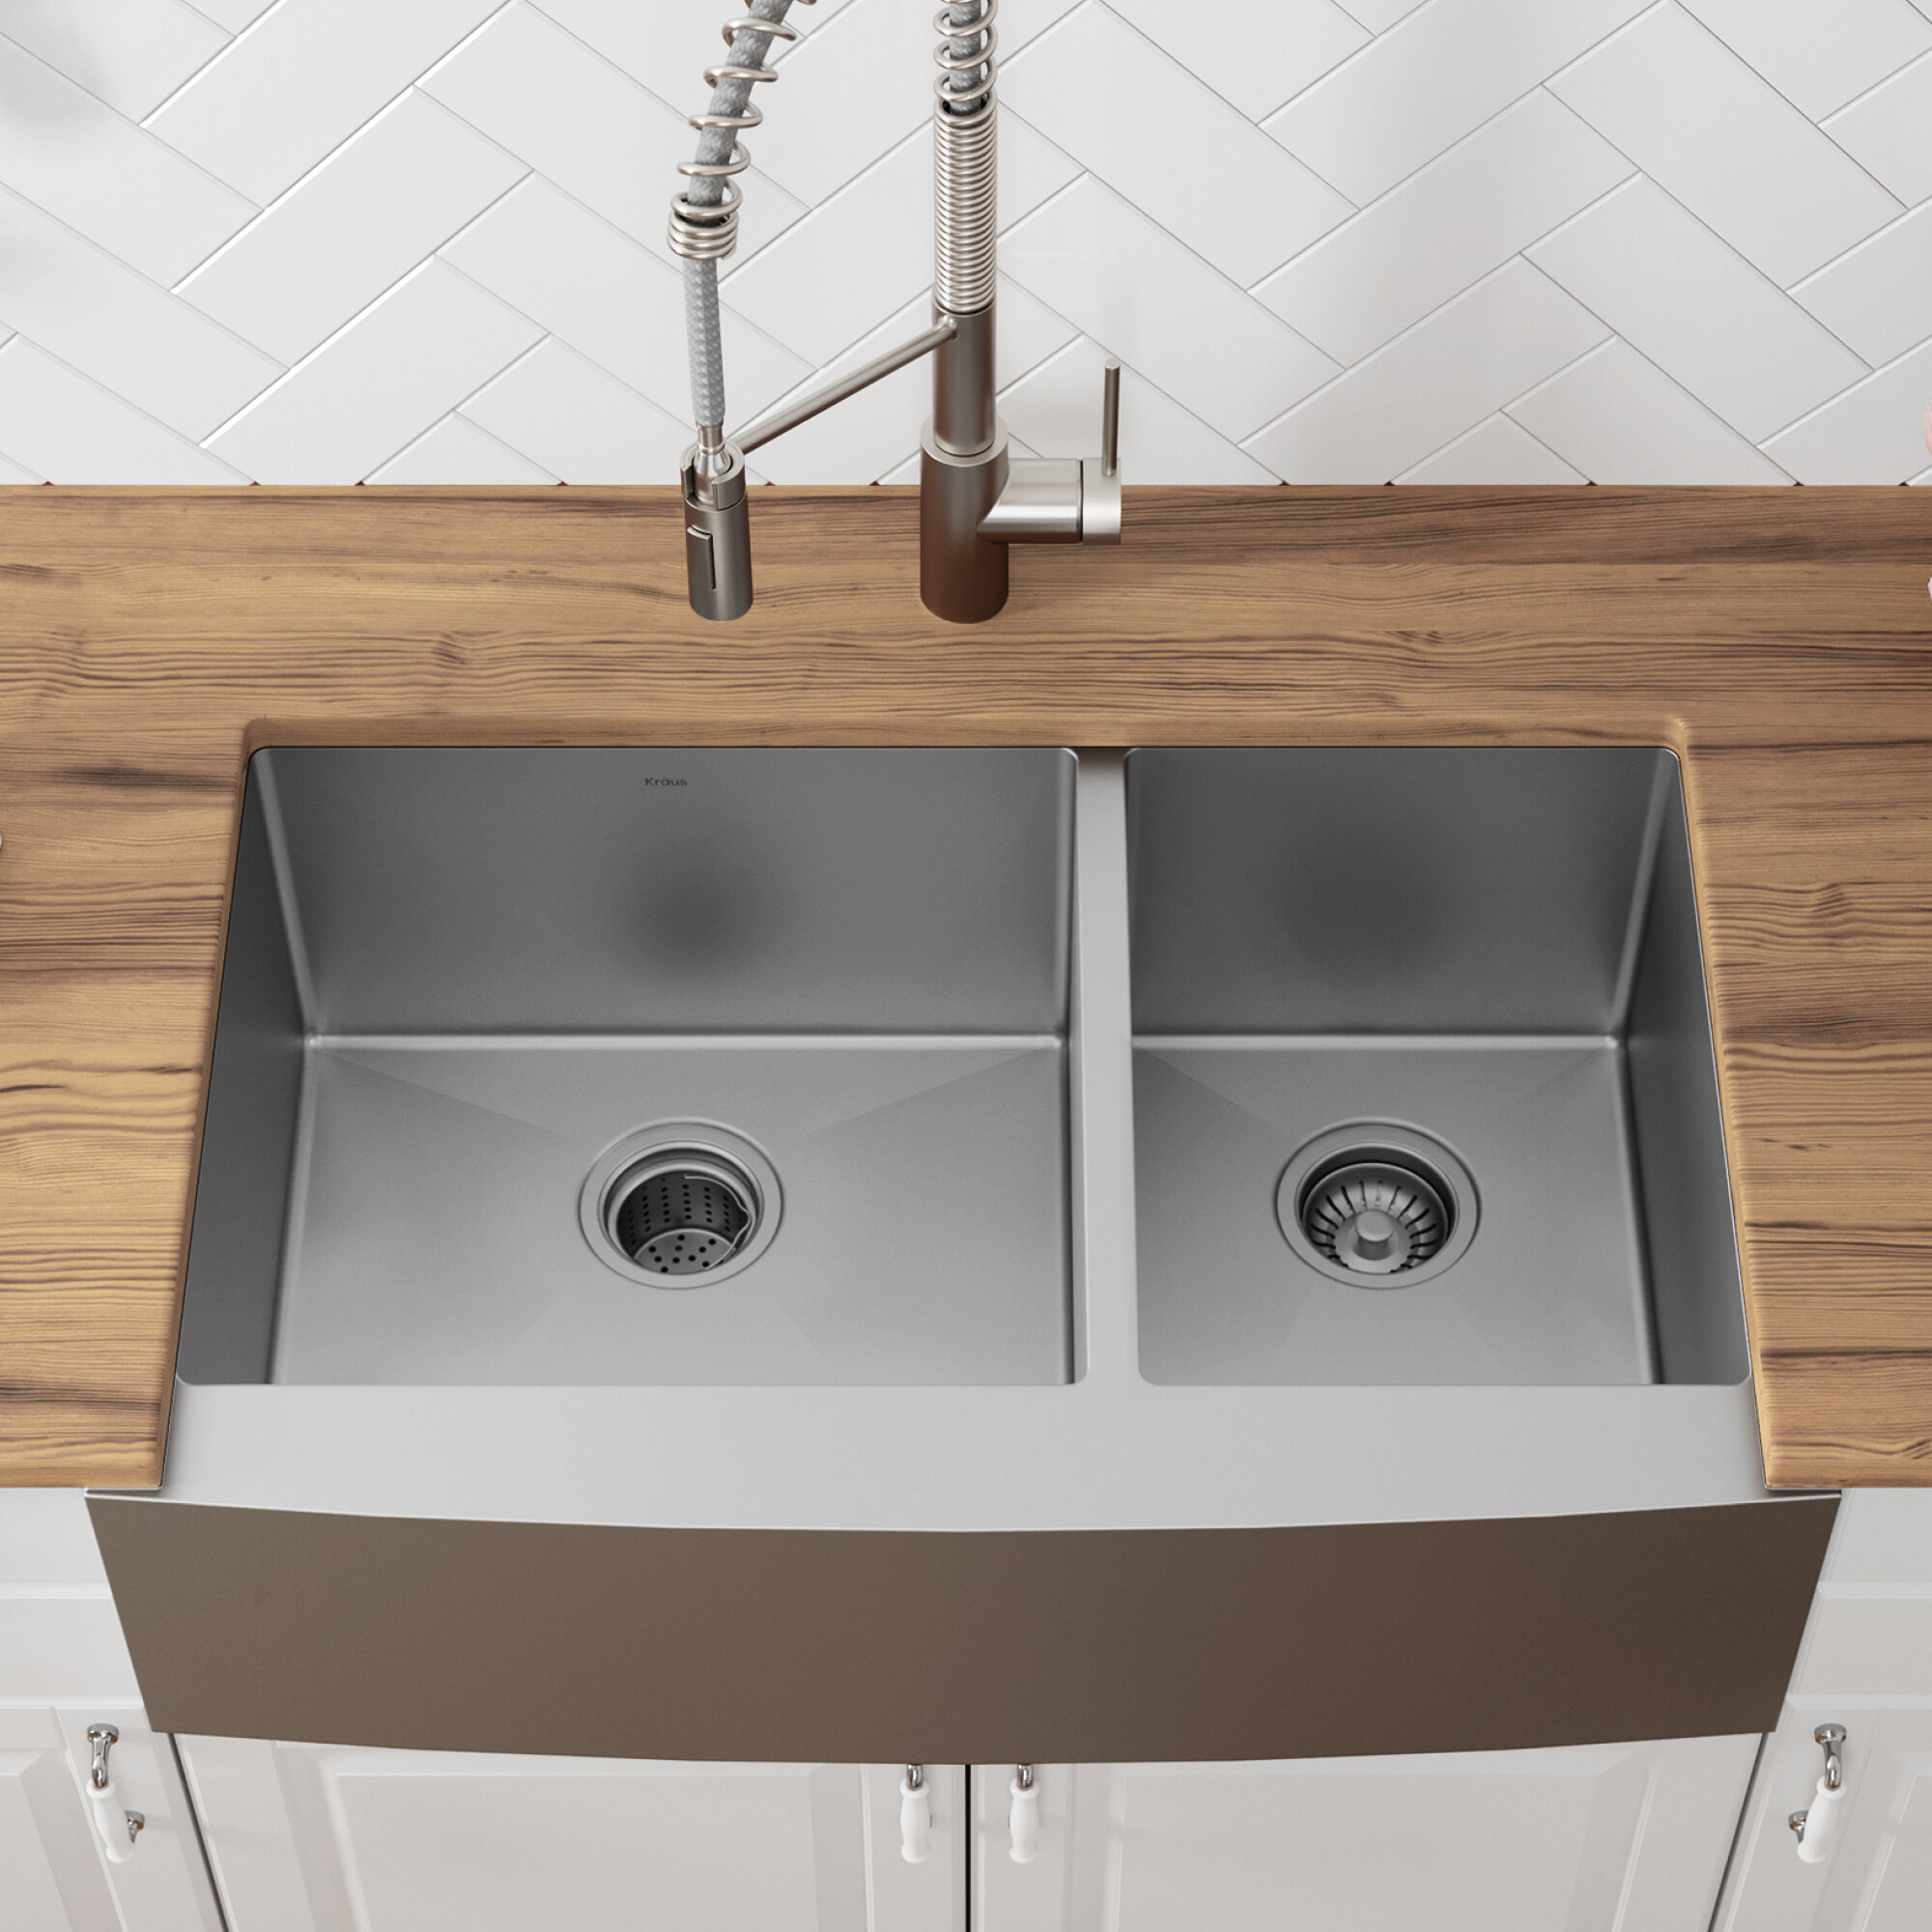 Khf203 36 Kitchen Sink L X 21 W Double Basin Farmhouse A With Drain Embly